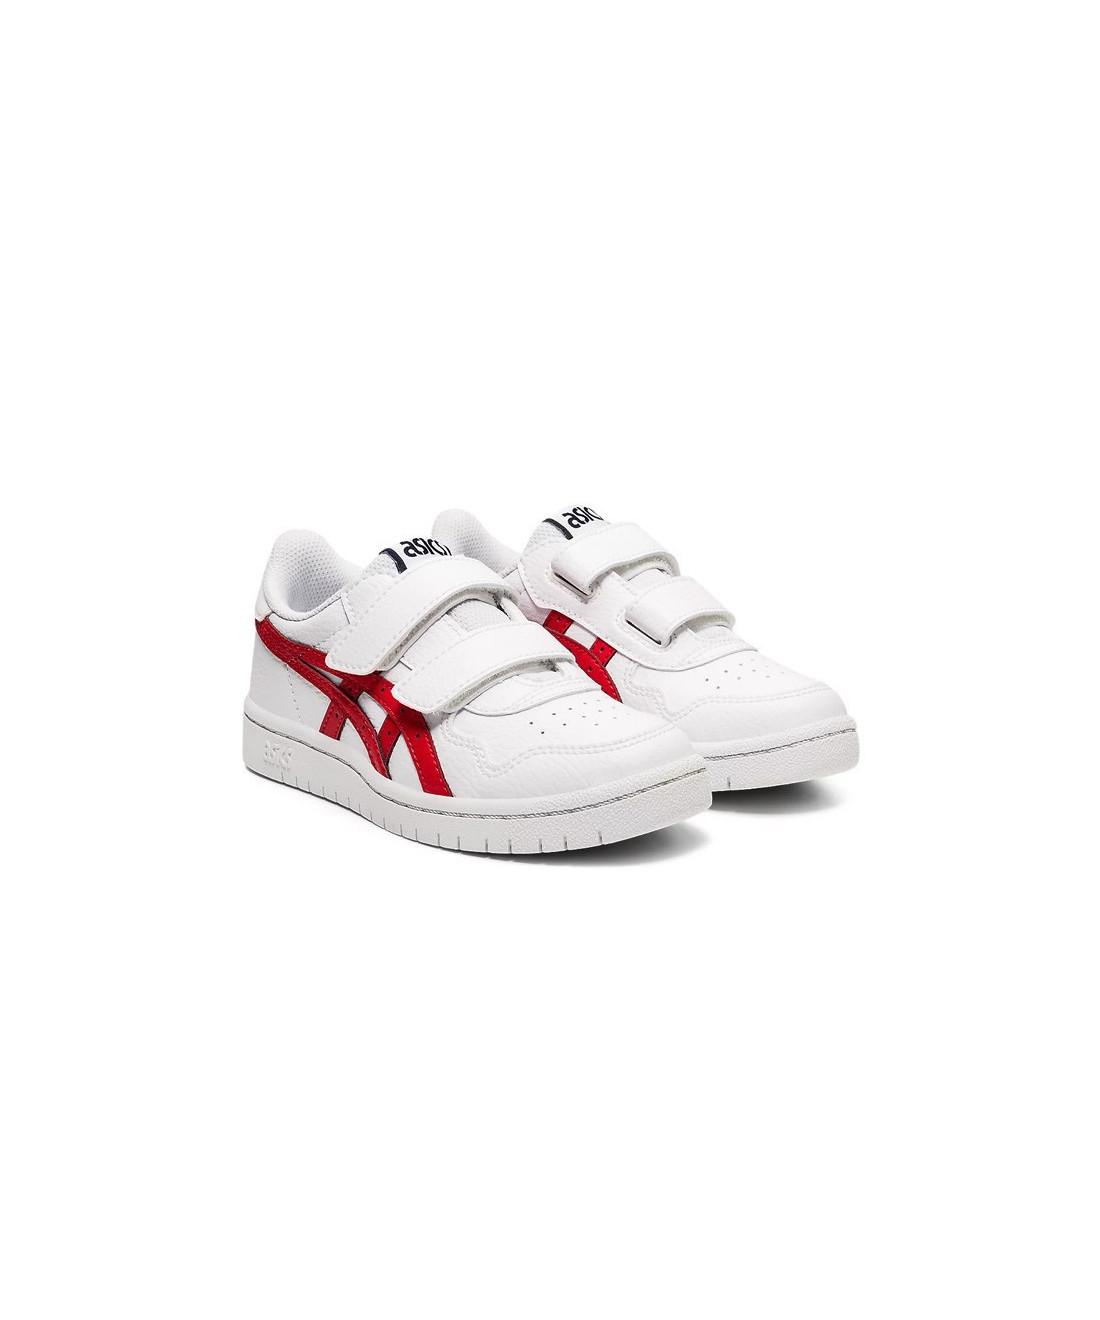 Asics Japan S PS Blanc/Rouge 1194A077-101